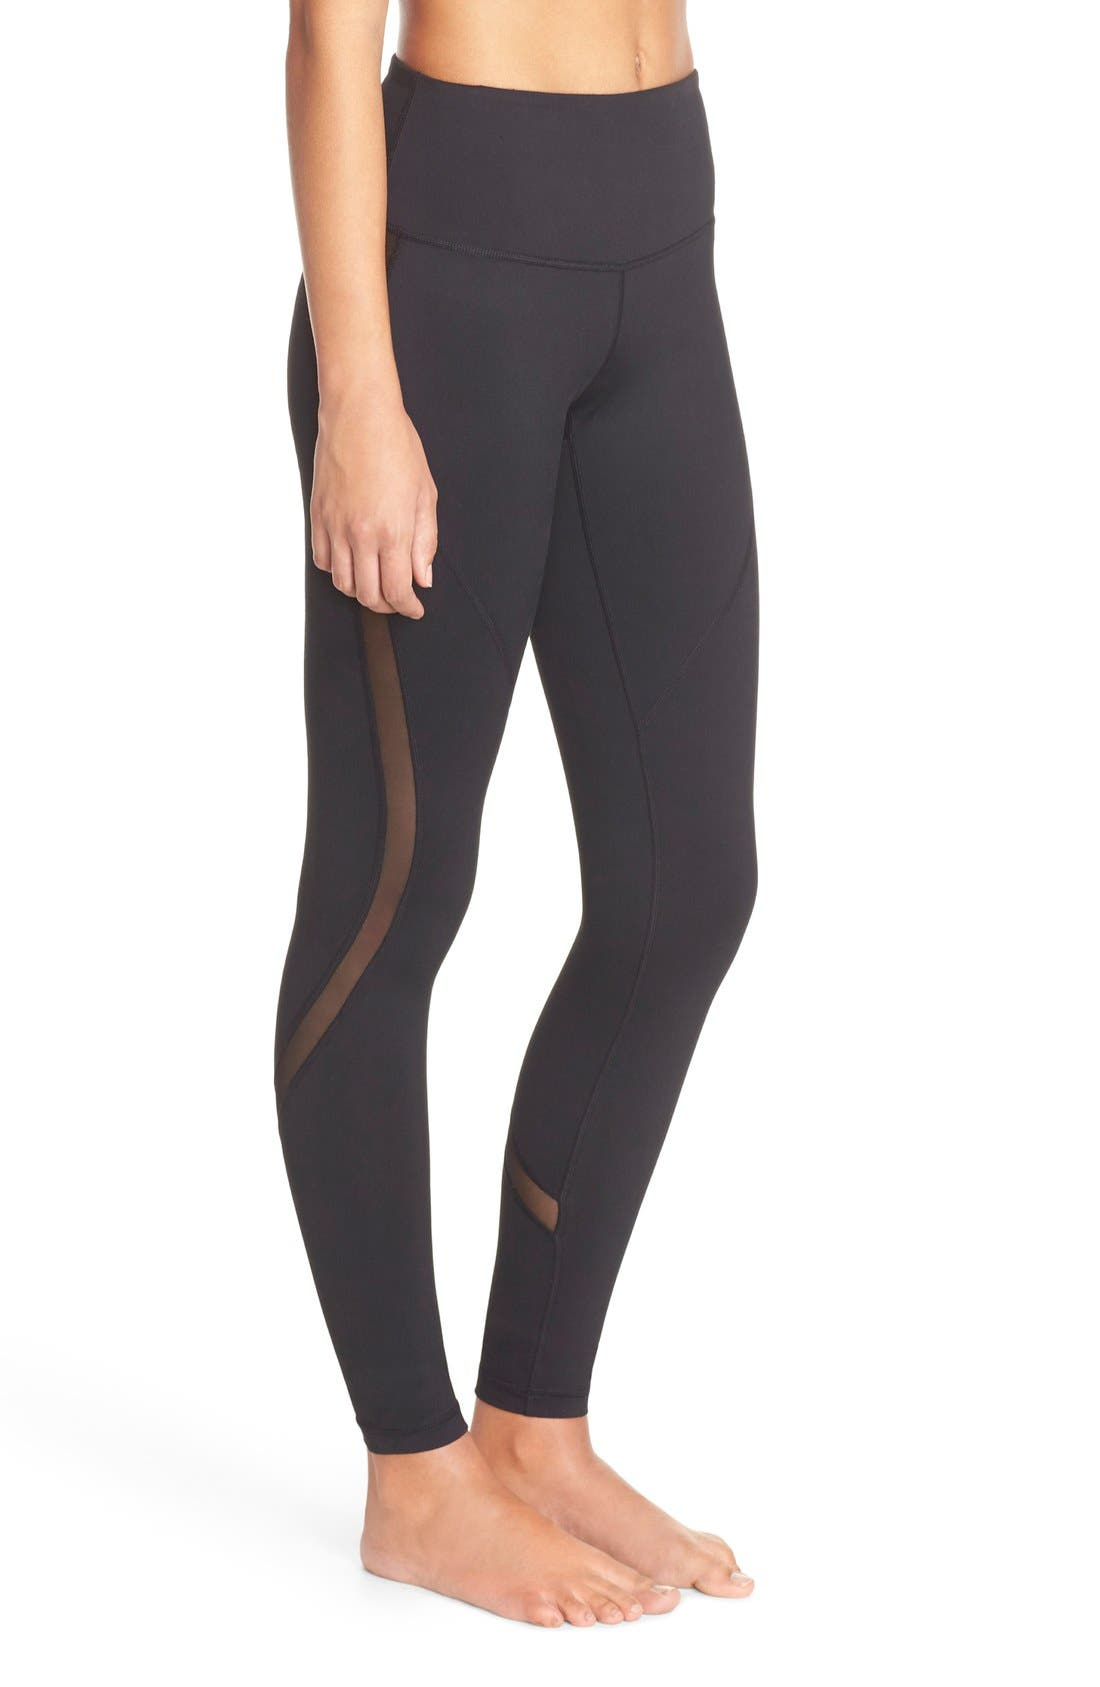 Main Image - Zella Sheer to Here High Waist Leggings